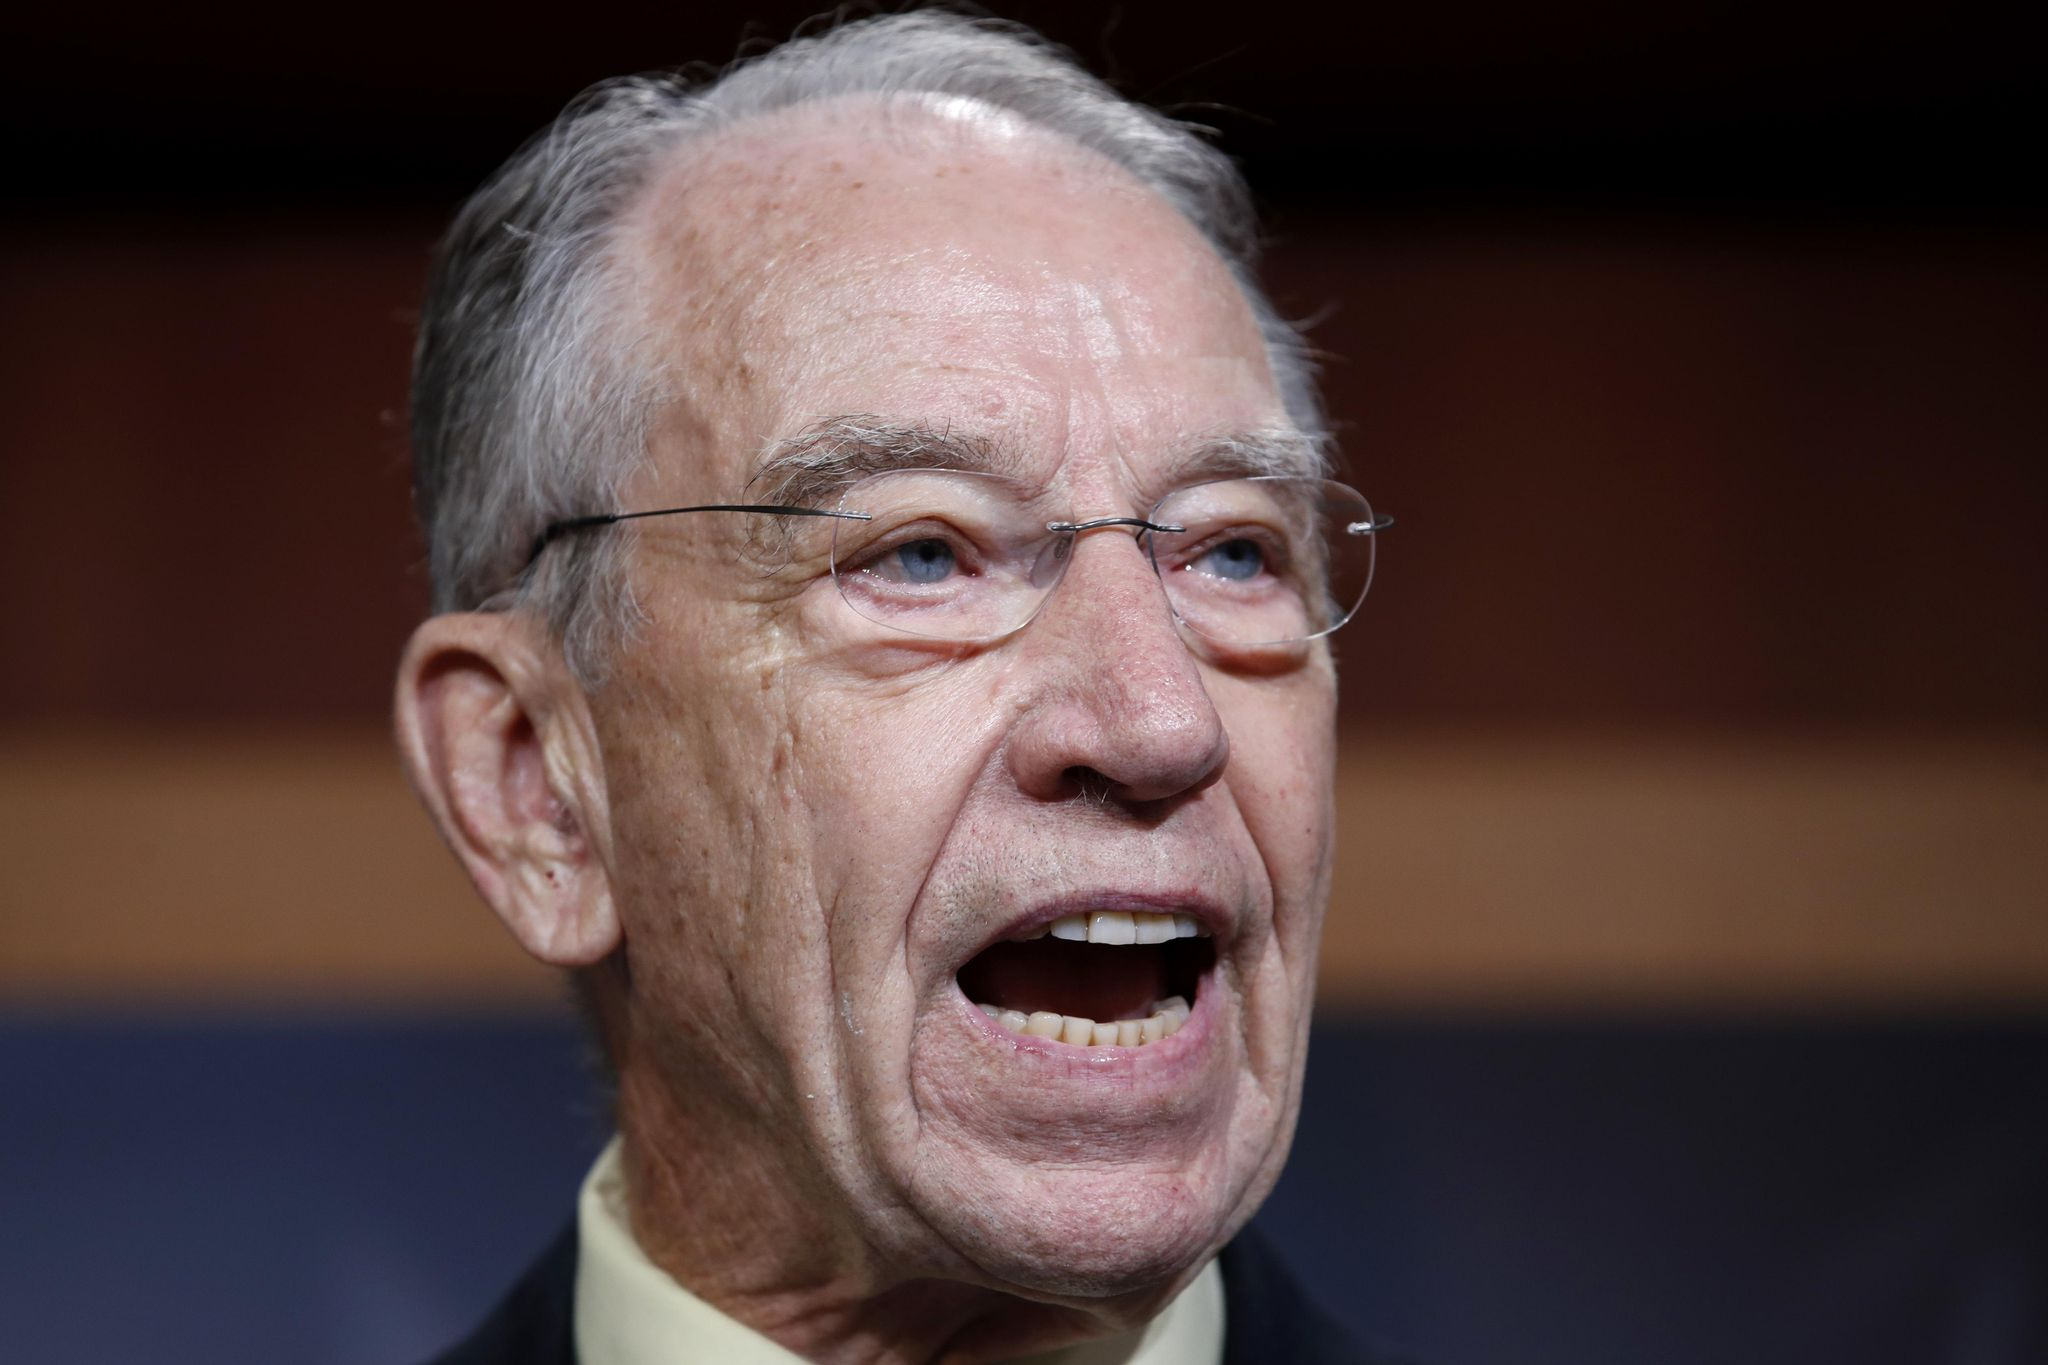 Kavanaugh's replacement on D.C. Circuit could get confirmed by Christmas, Grassley says